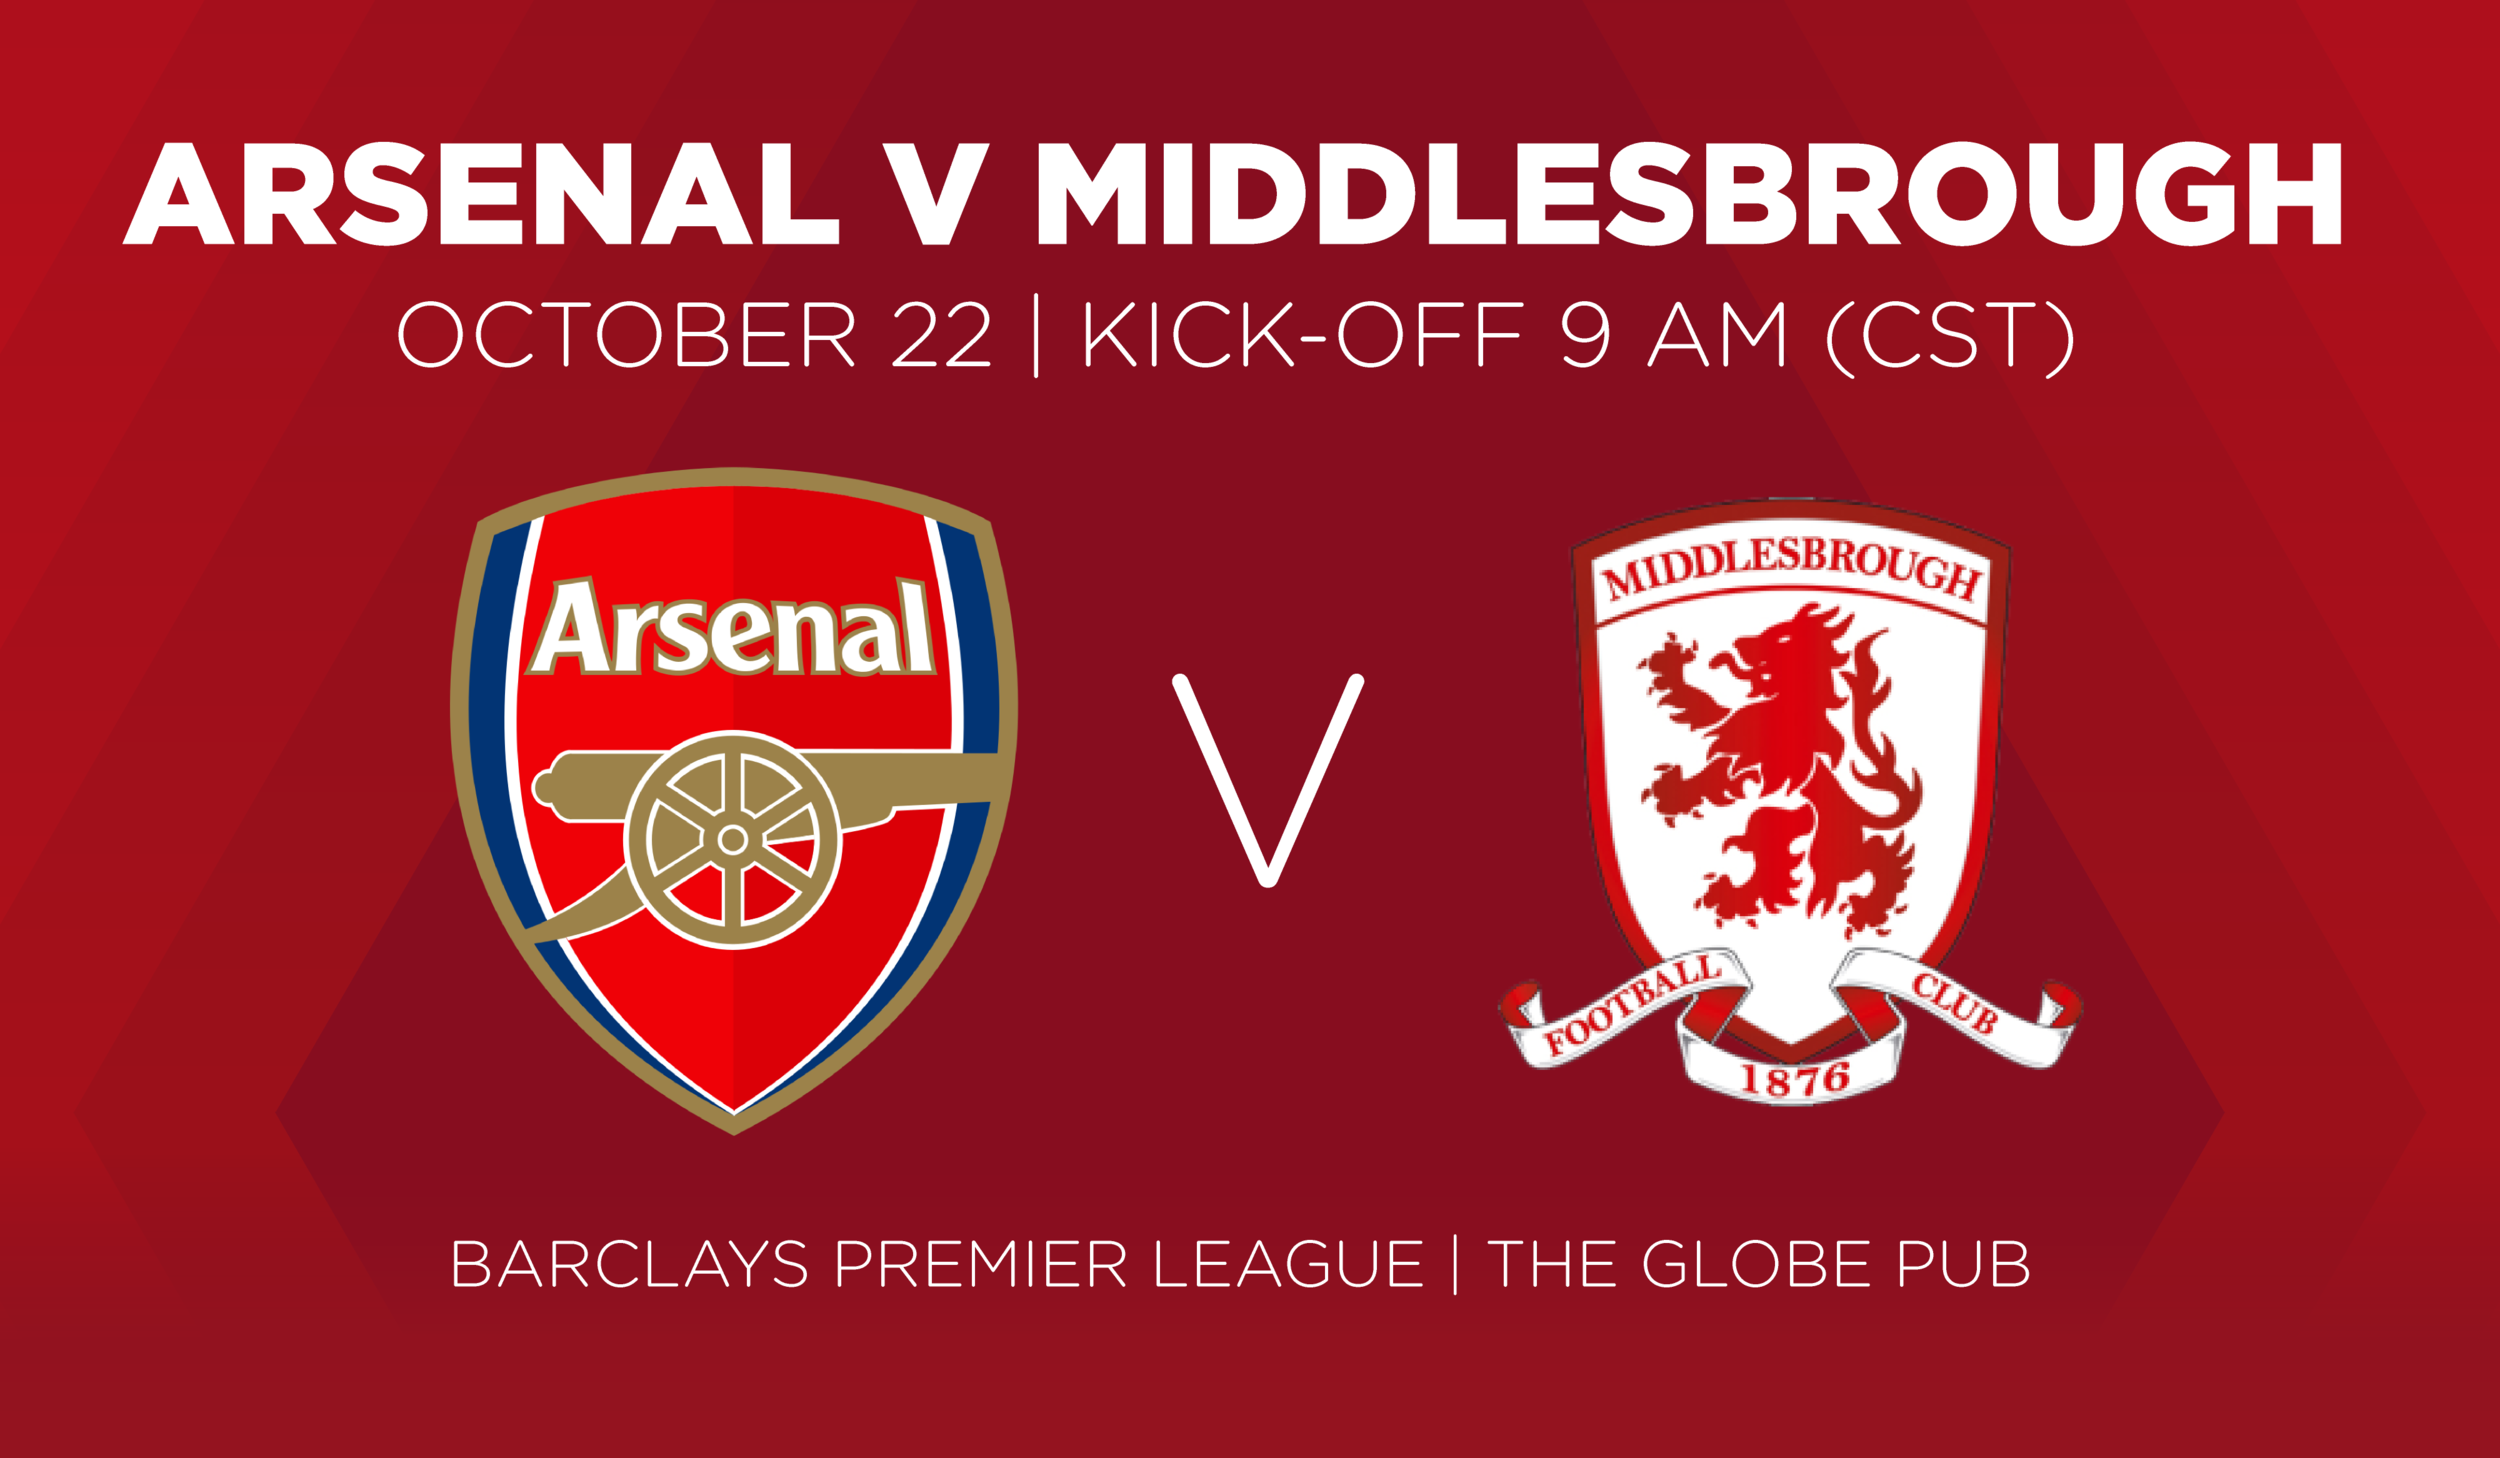 Arsenal V Middlesbrough